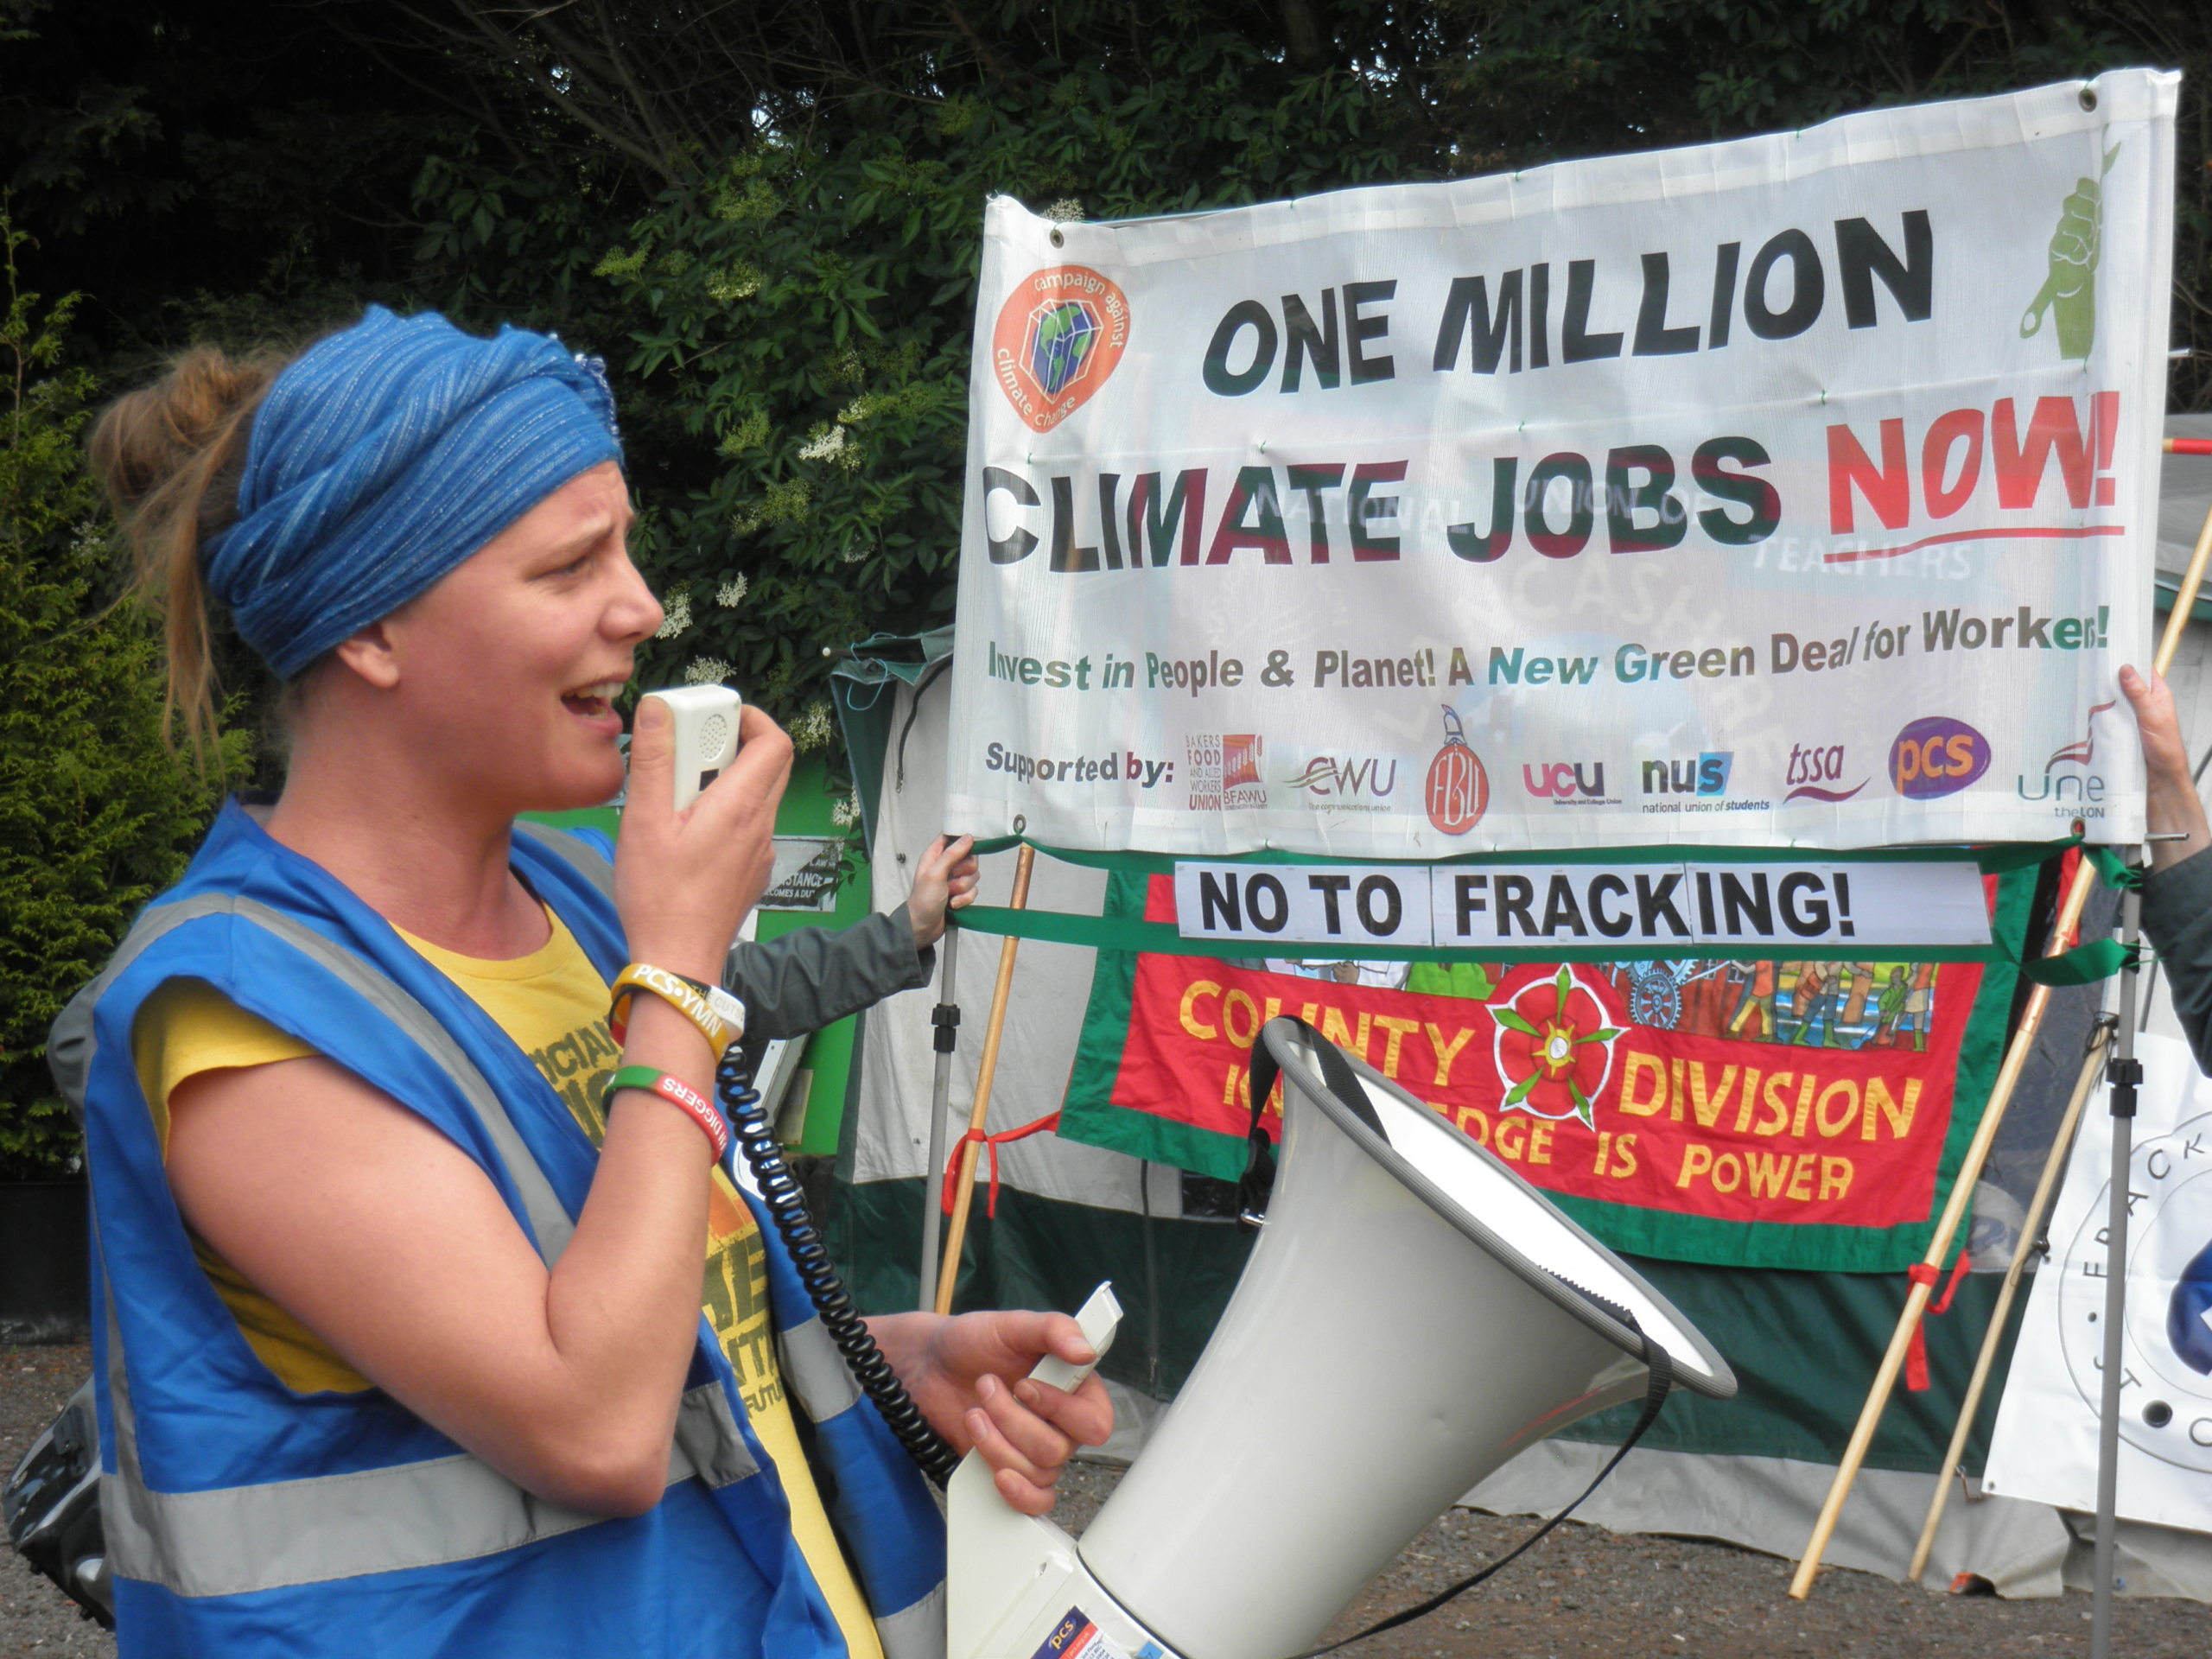 Trade Unions and Climate Change: An Interview with Clara Paillard